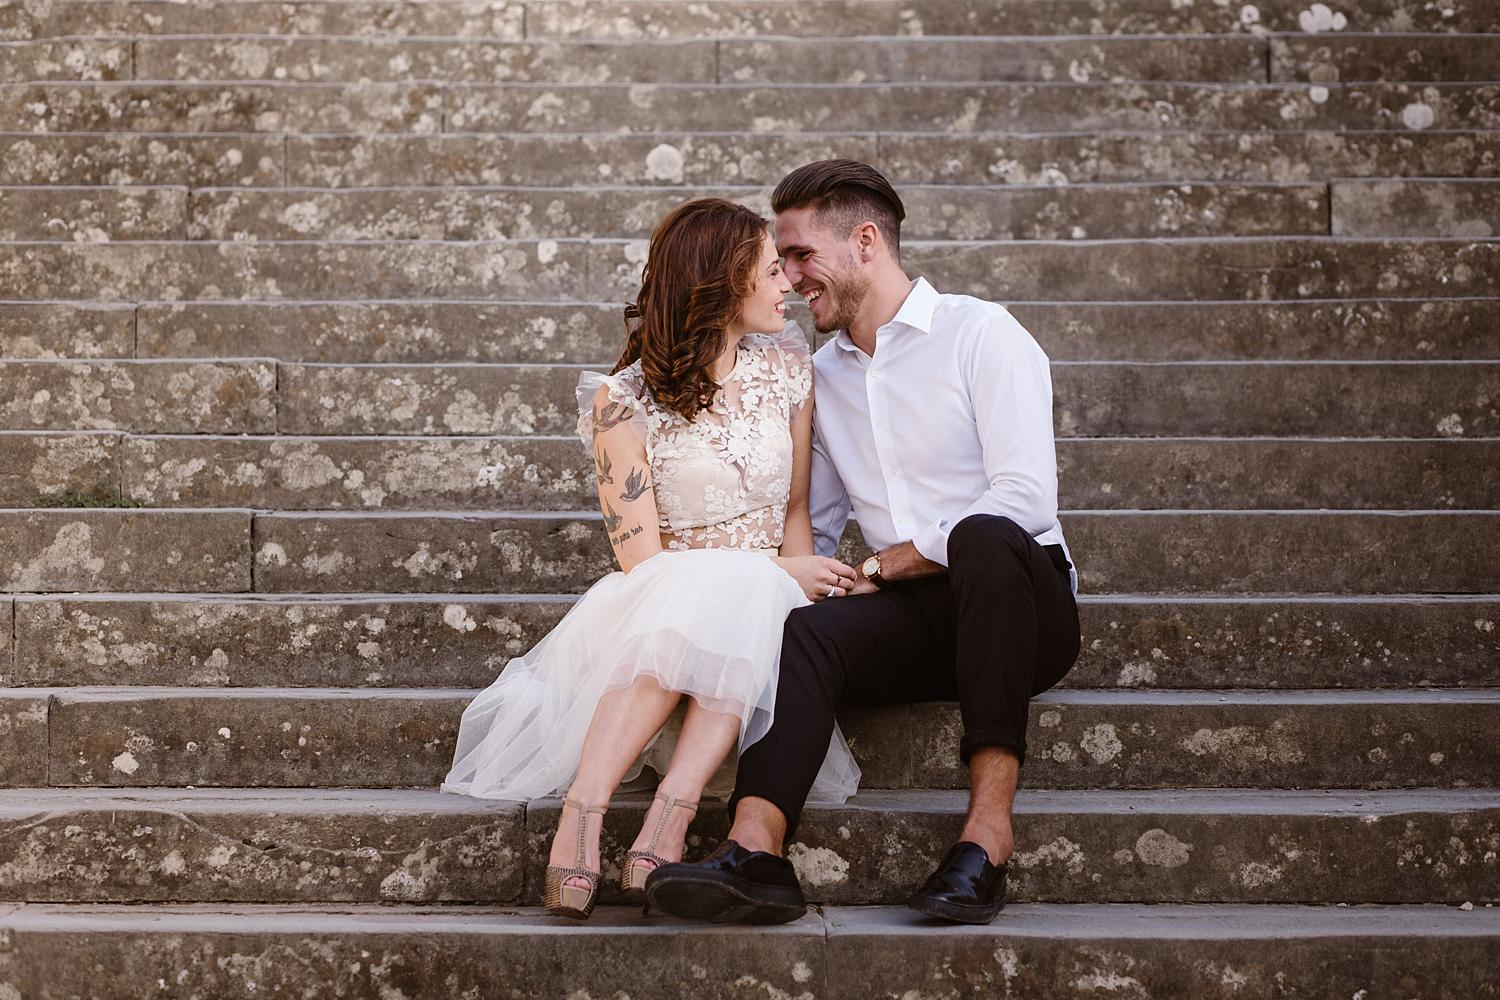 weddingphotographer florence 43 - Maddalena & Arturo - A Chic Anniversary Session in Florence